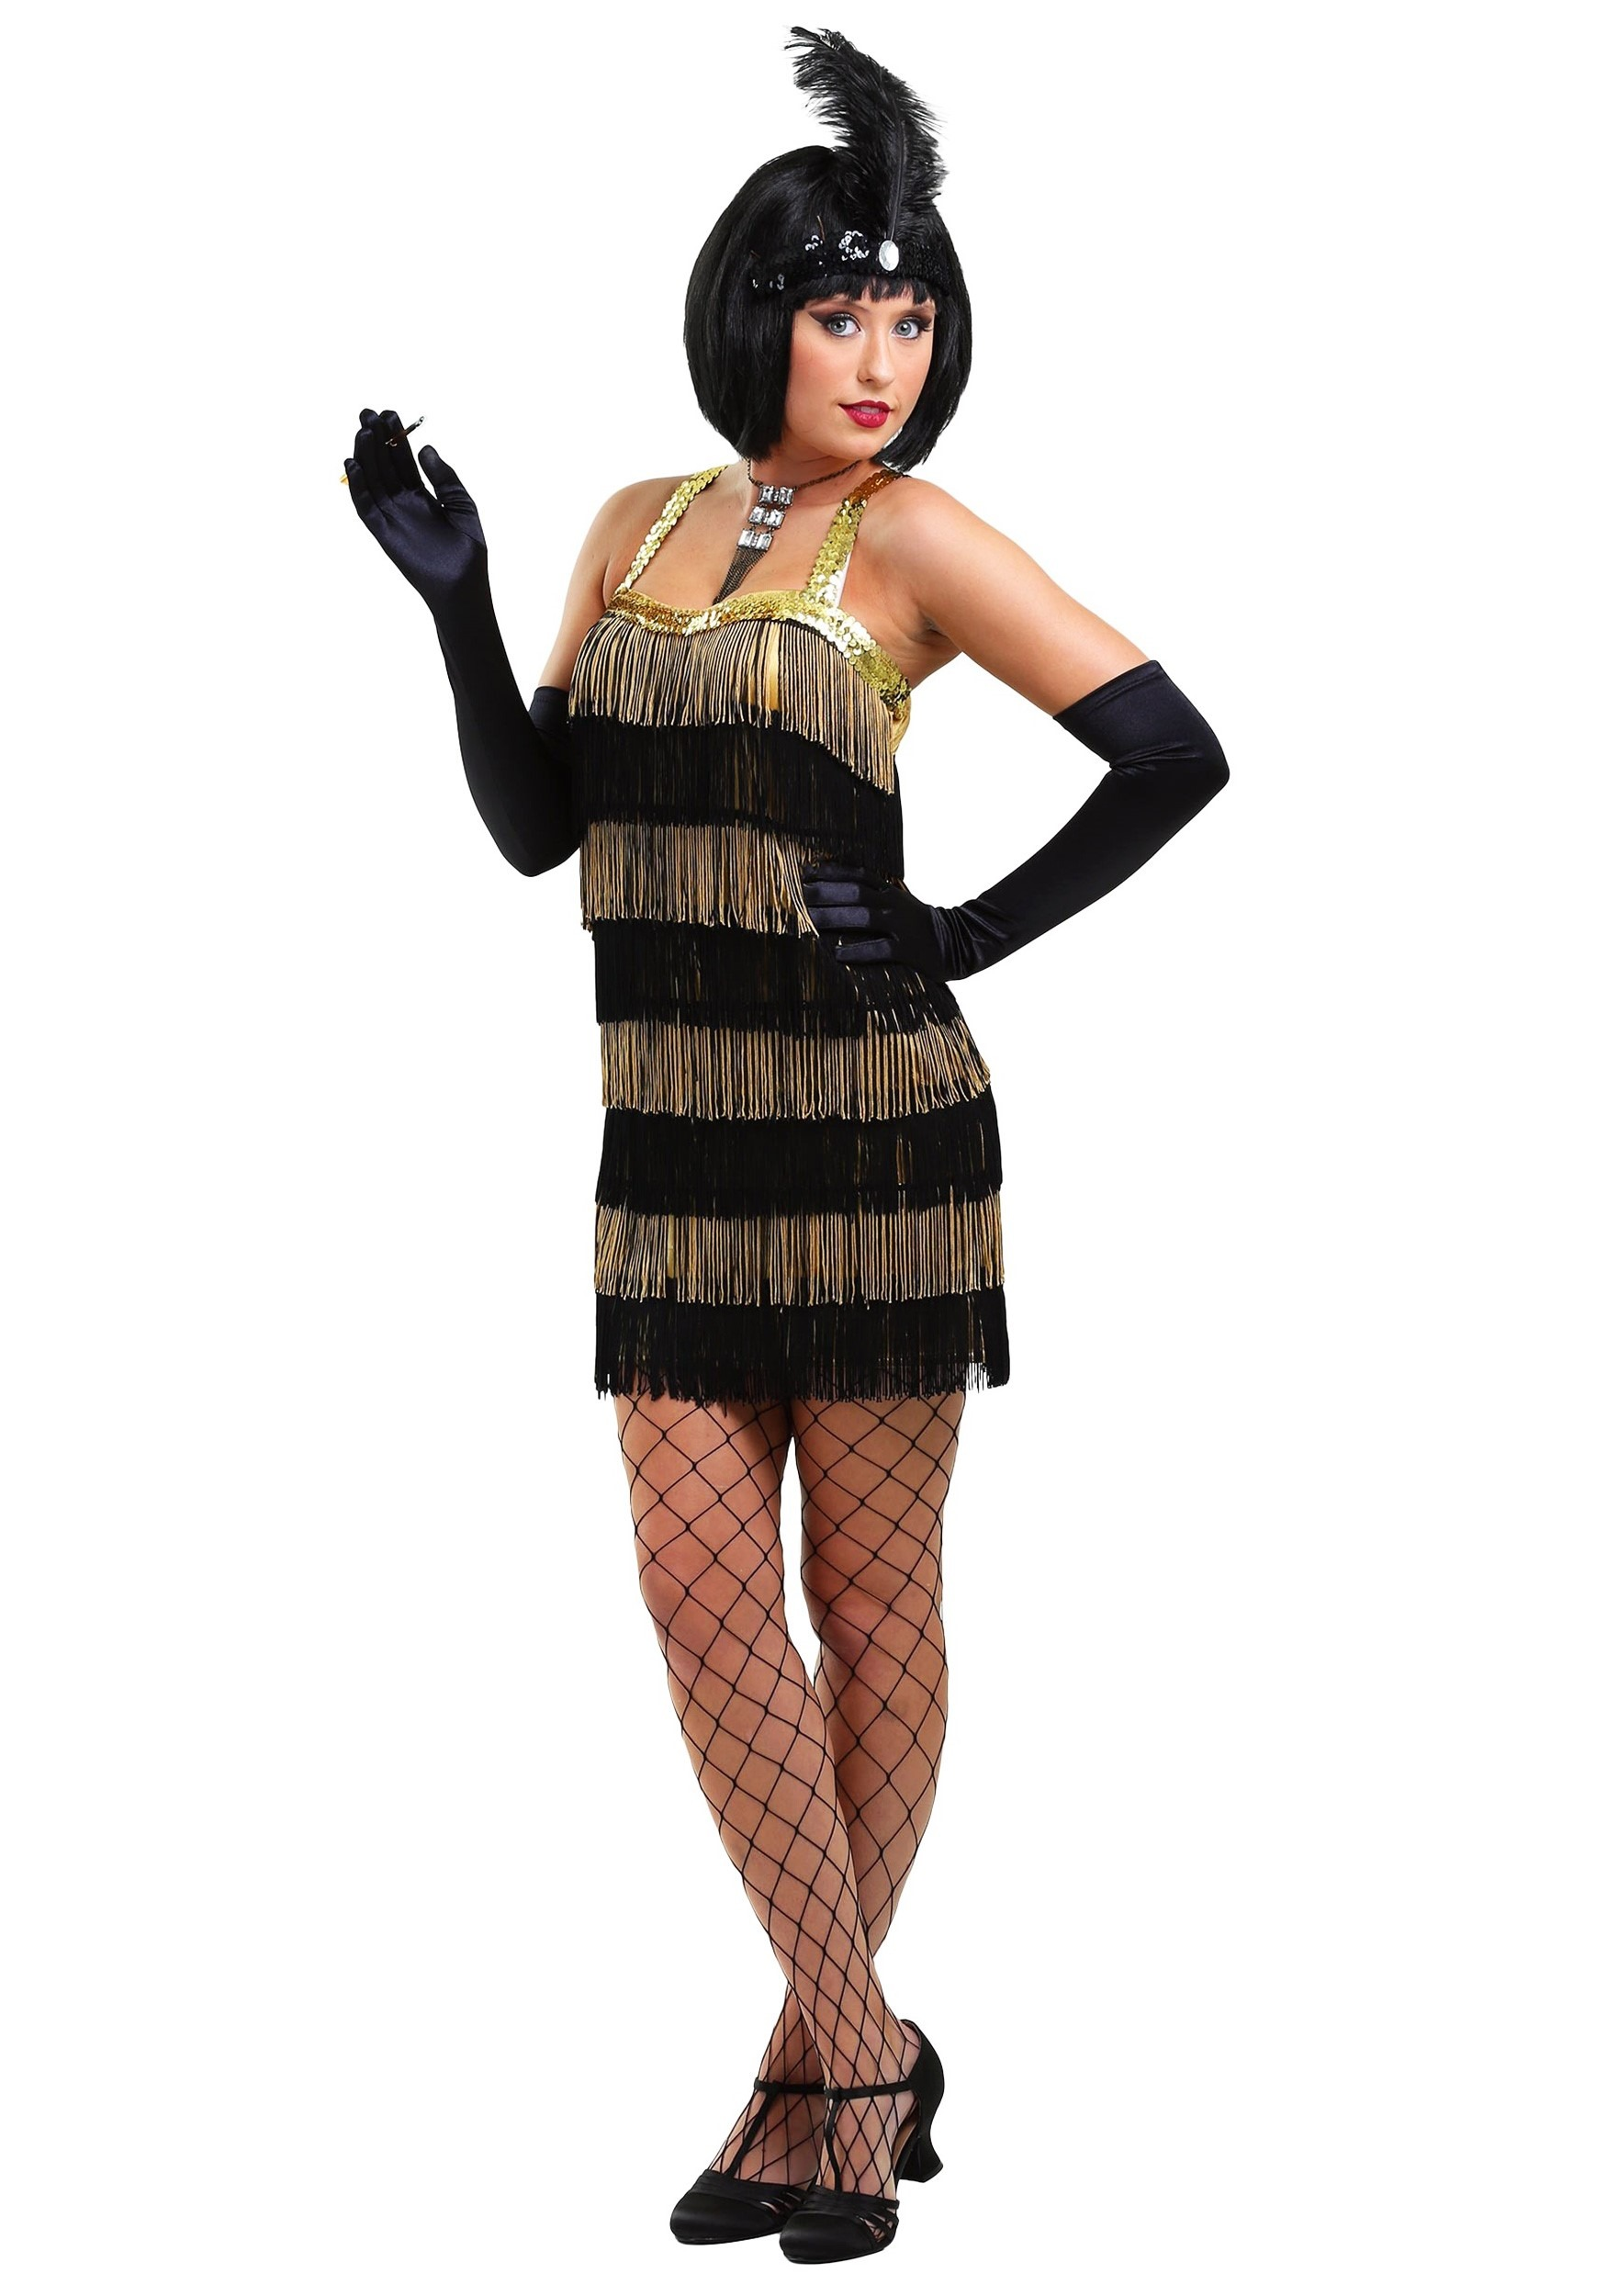 Black u0026 Gold Fringe Flapper Dress  sc 1 st  Halloween Costume Ideas & Black u0026 Gold Fringe Flapper Dress - Adult Flapper 1920u0027s Costumes